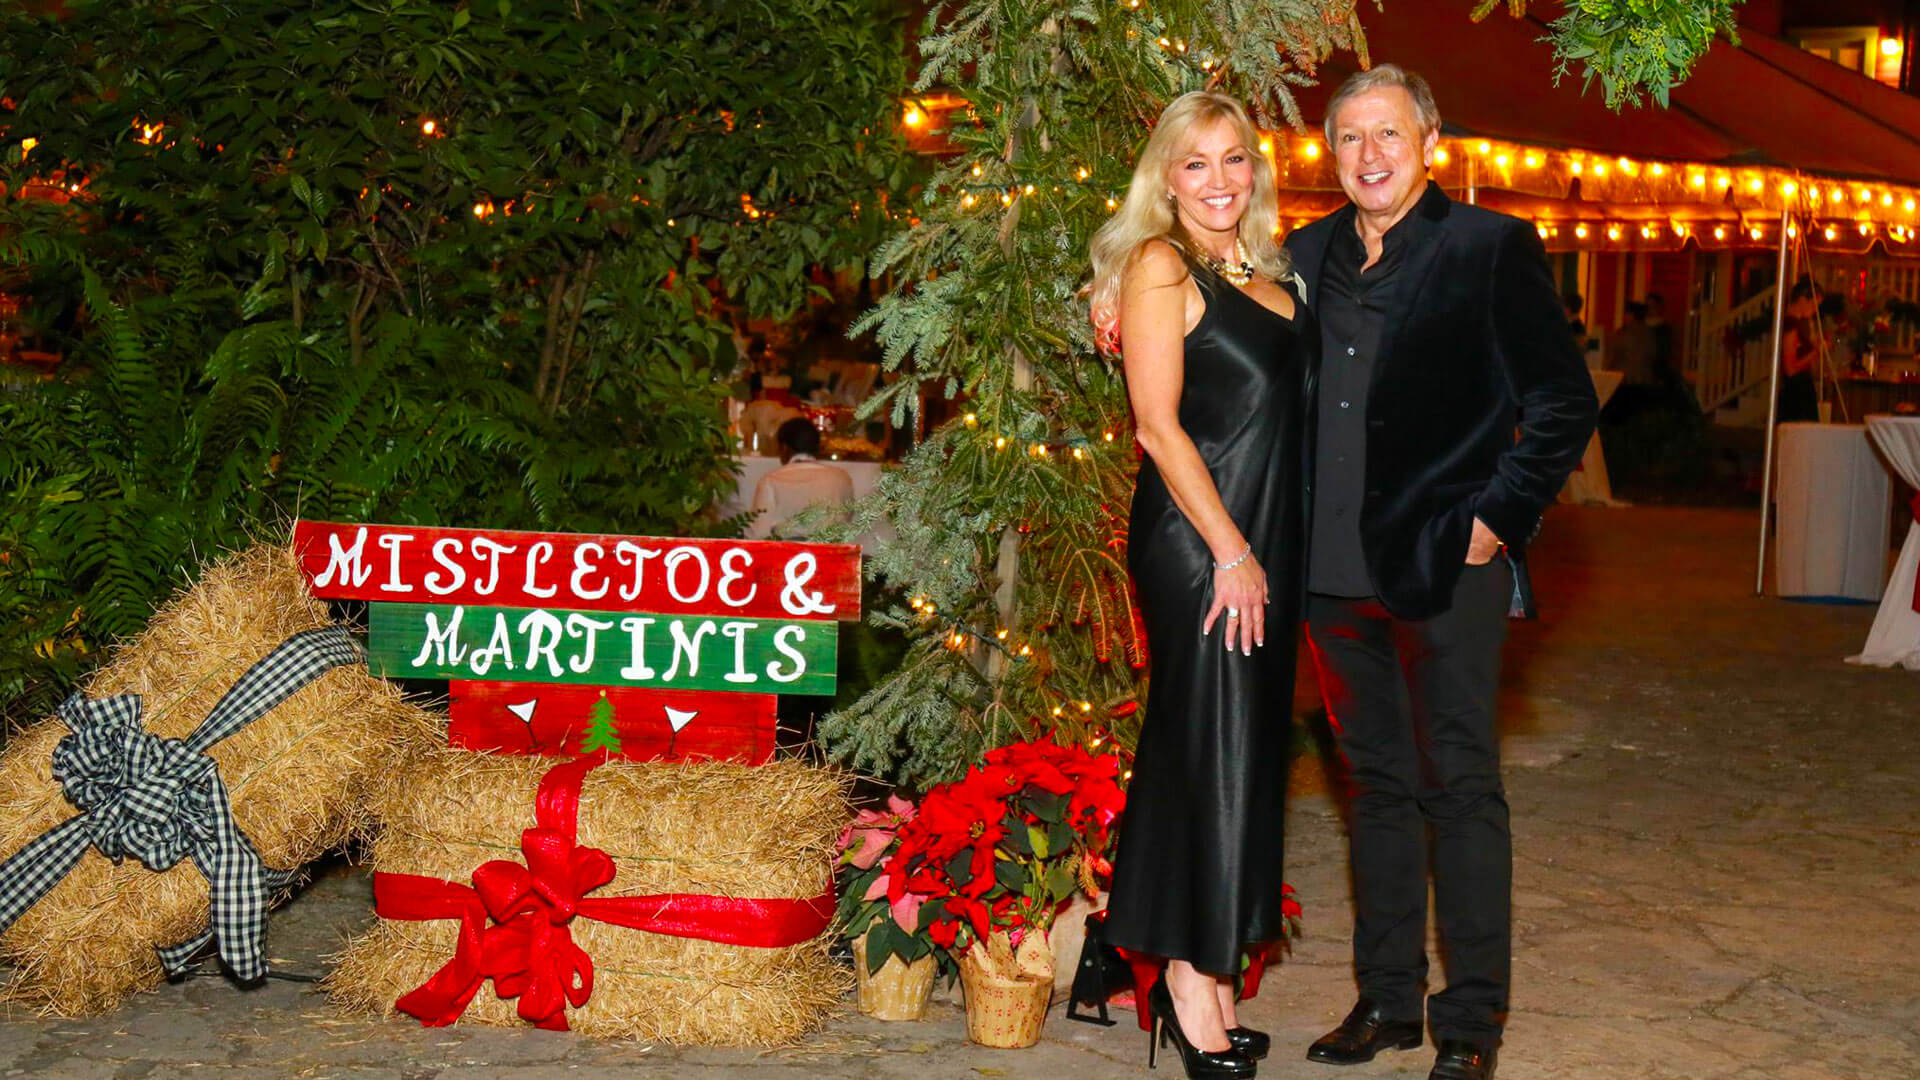 Couple standing in front of Mistletoe and Martini holiday party sign